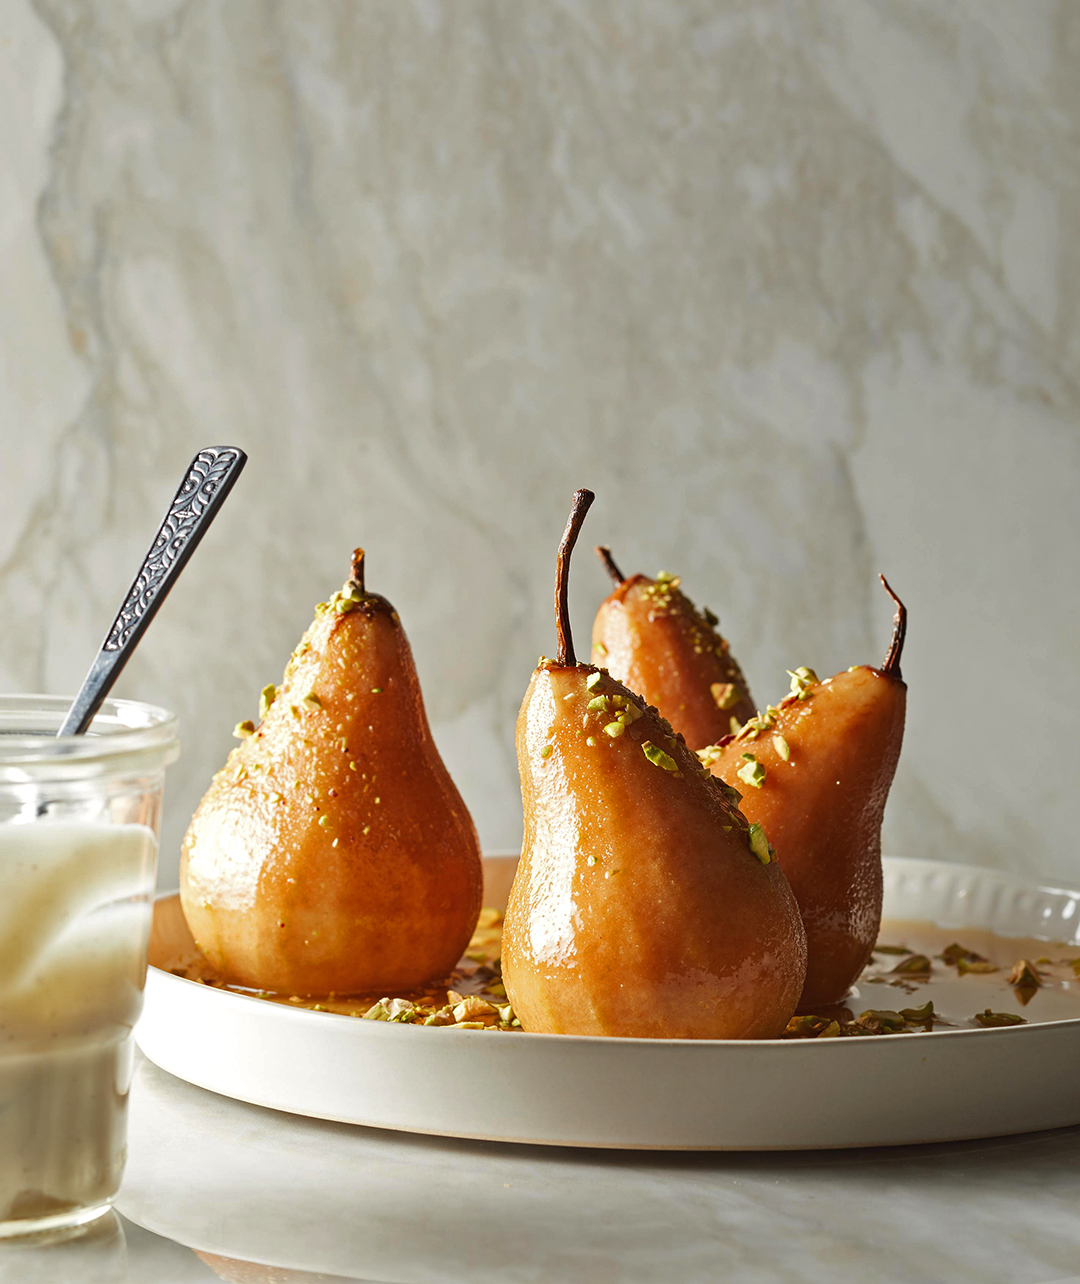 Cider-Poached Pears in the Slow Cooker or Pressure Cooker